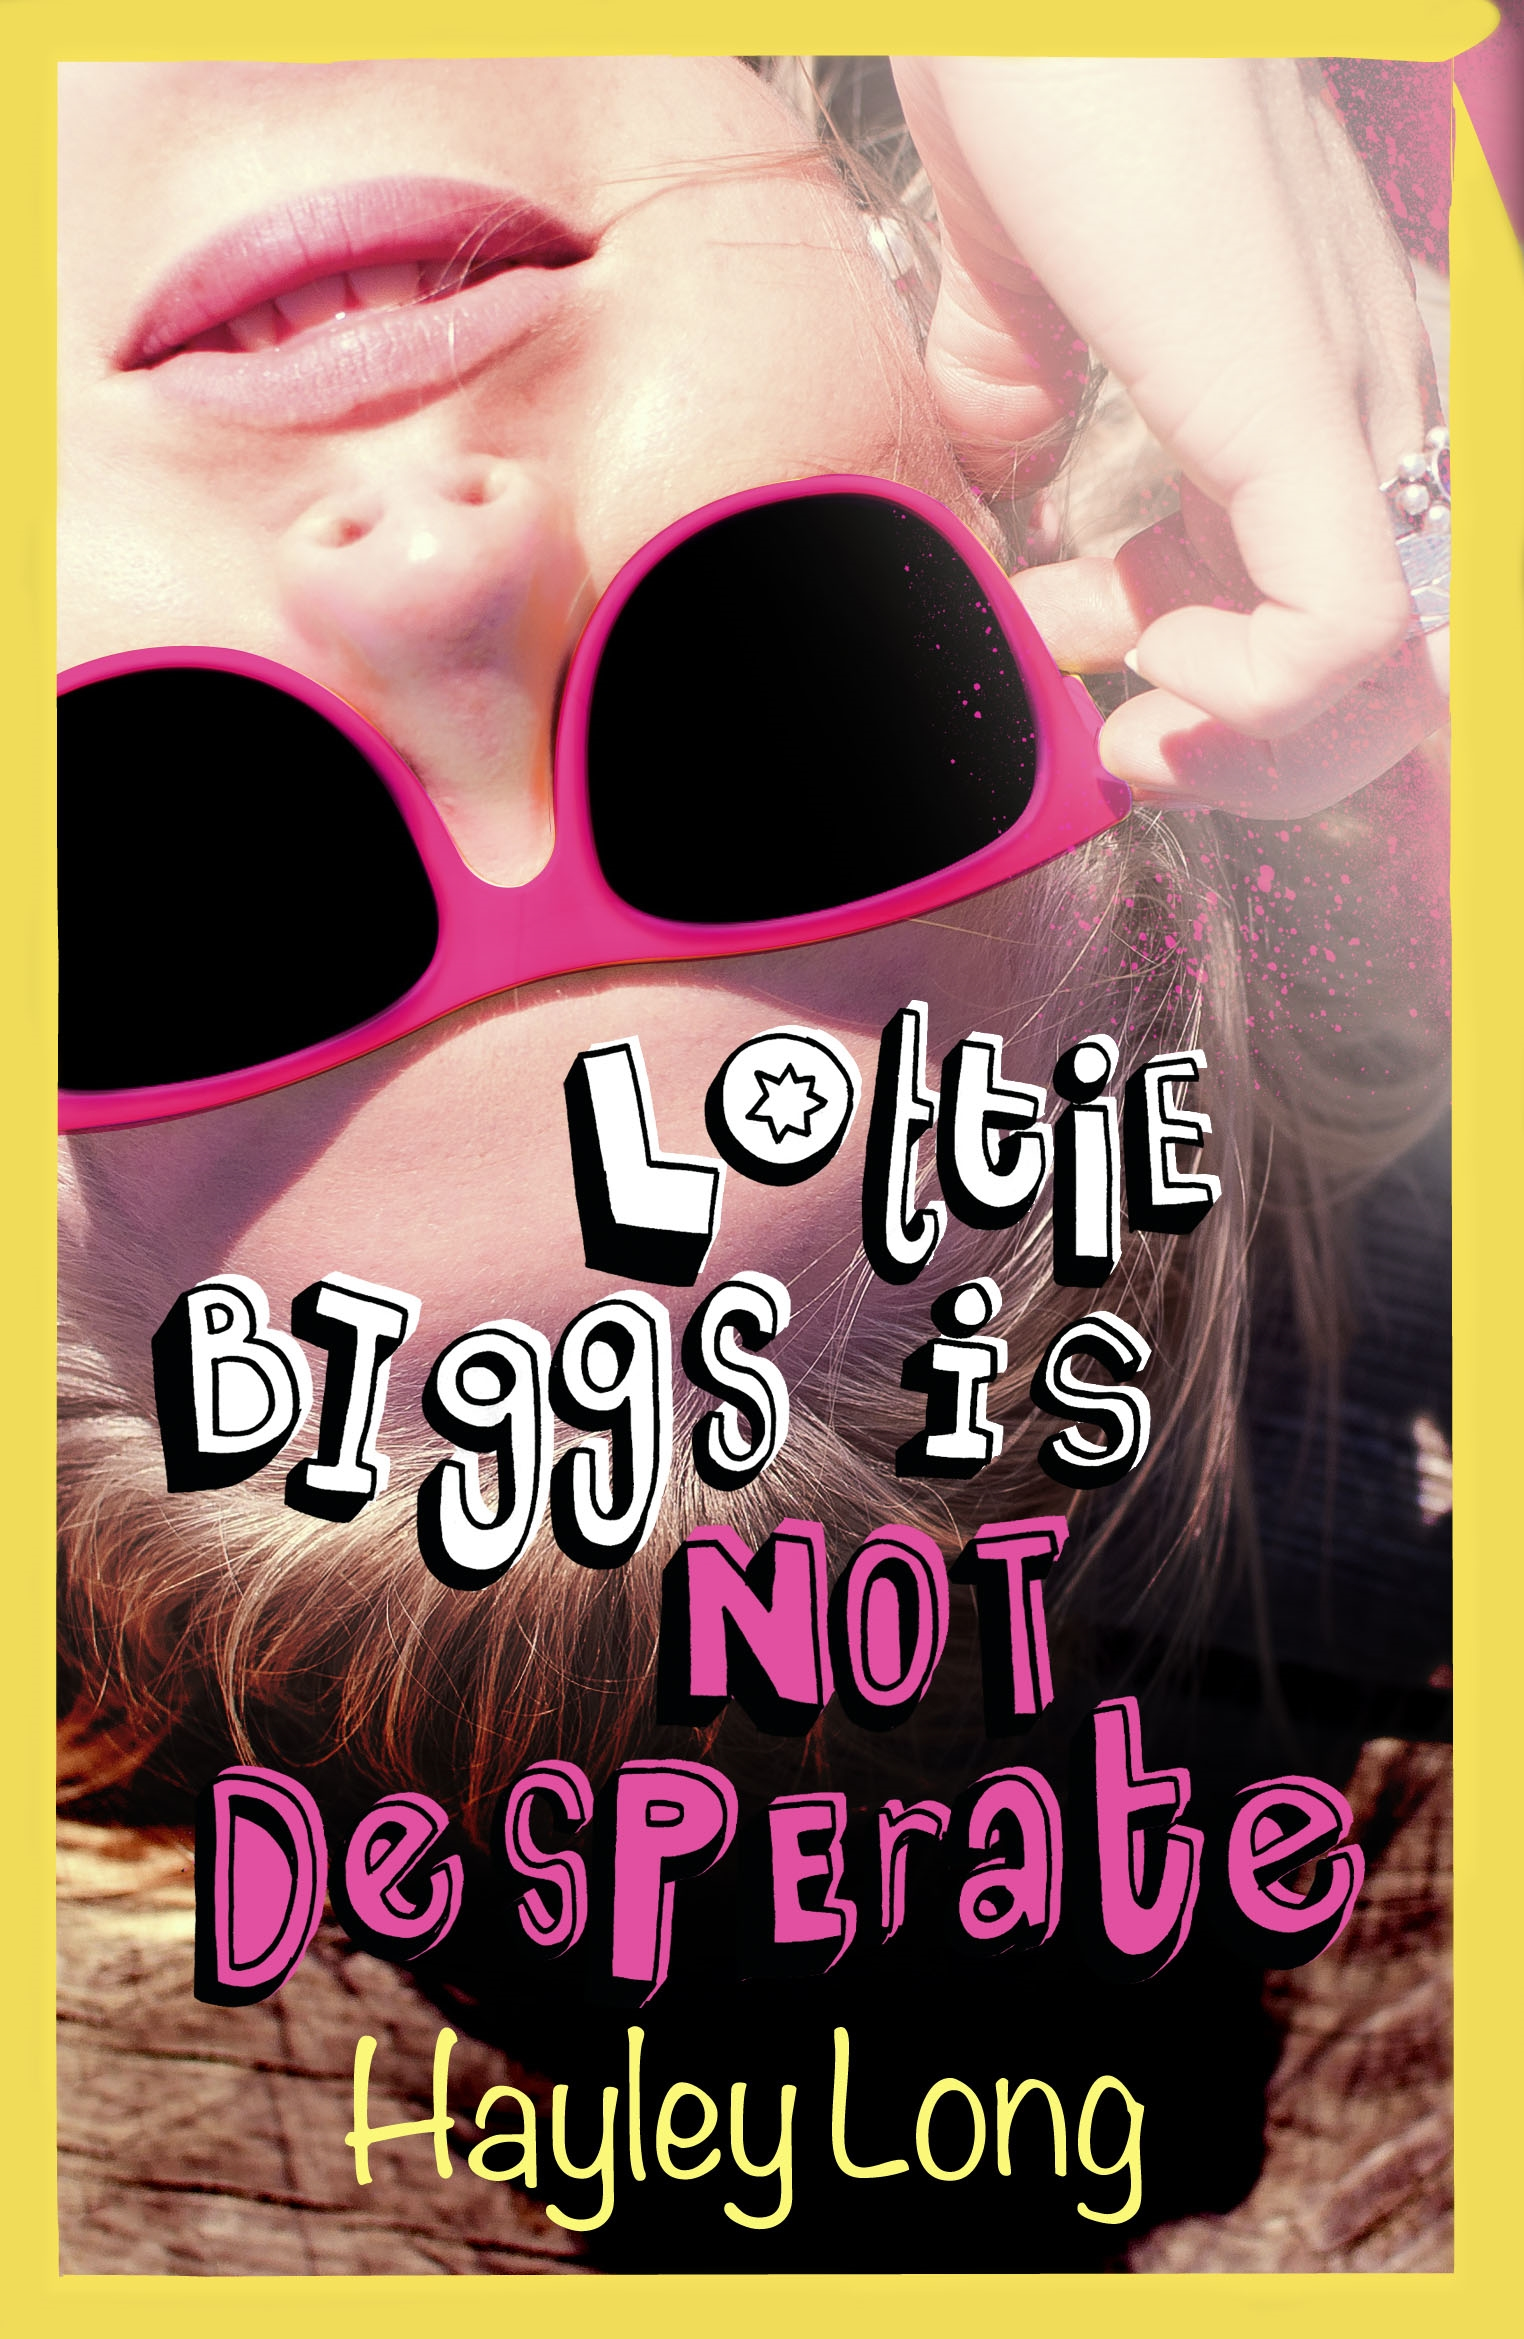 Lottie Biggs is (Not) Desperate